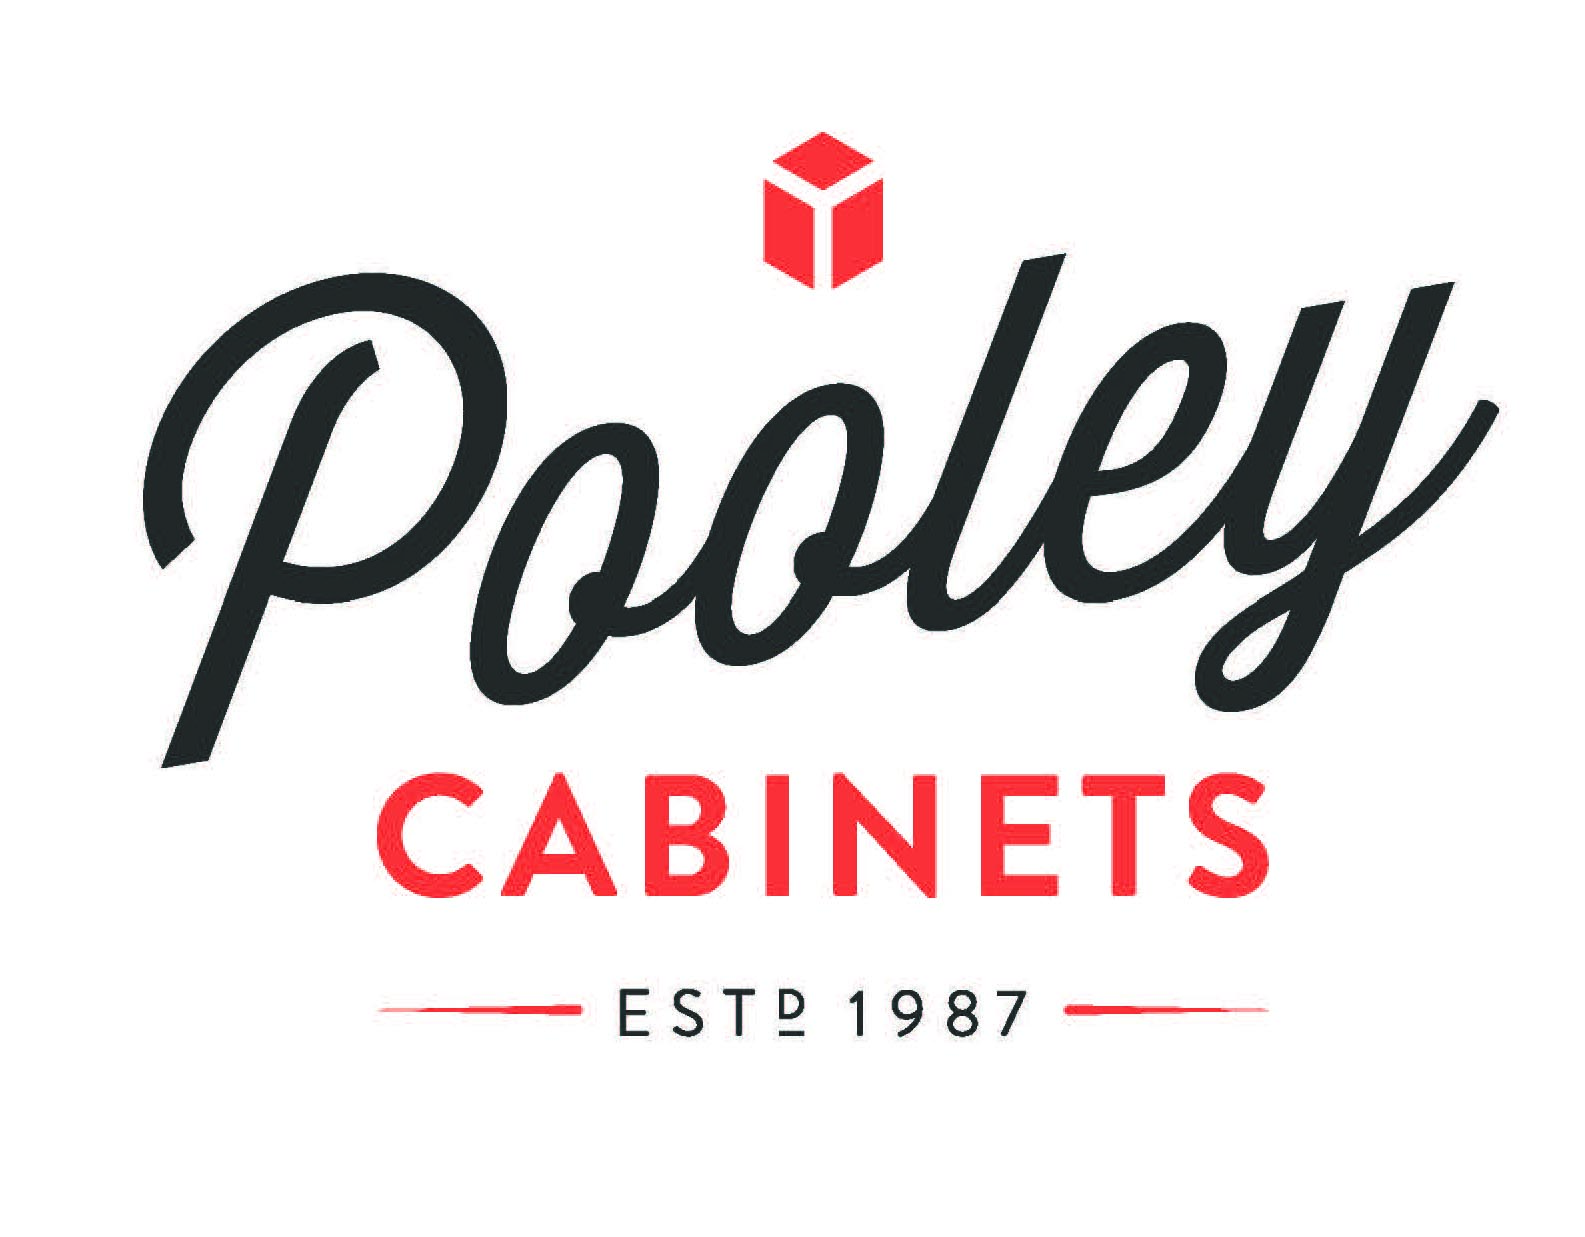 Pooley Cabinet Industries Ltd.